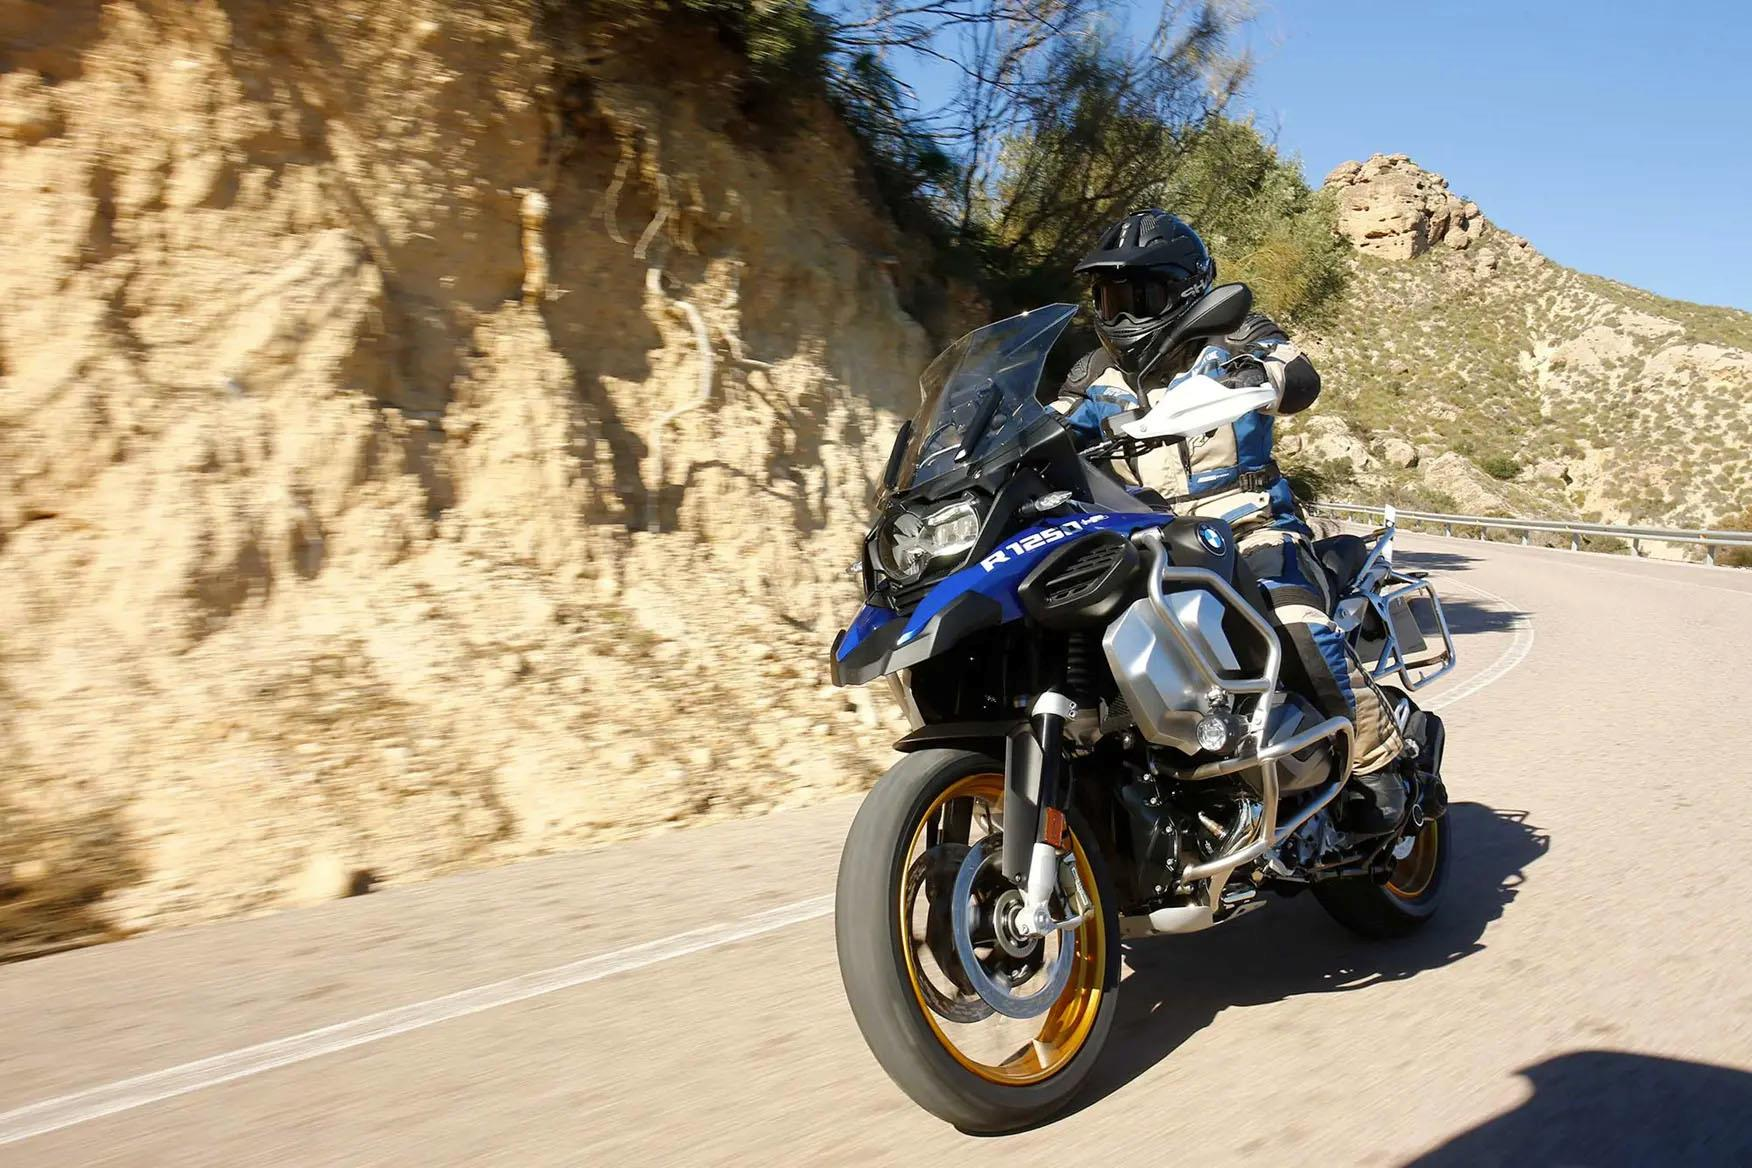 BMW R1250GS Adventure takes over where the BMW 1200 GS left off